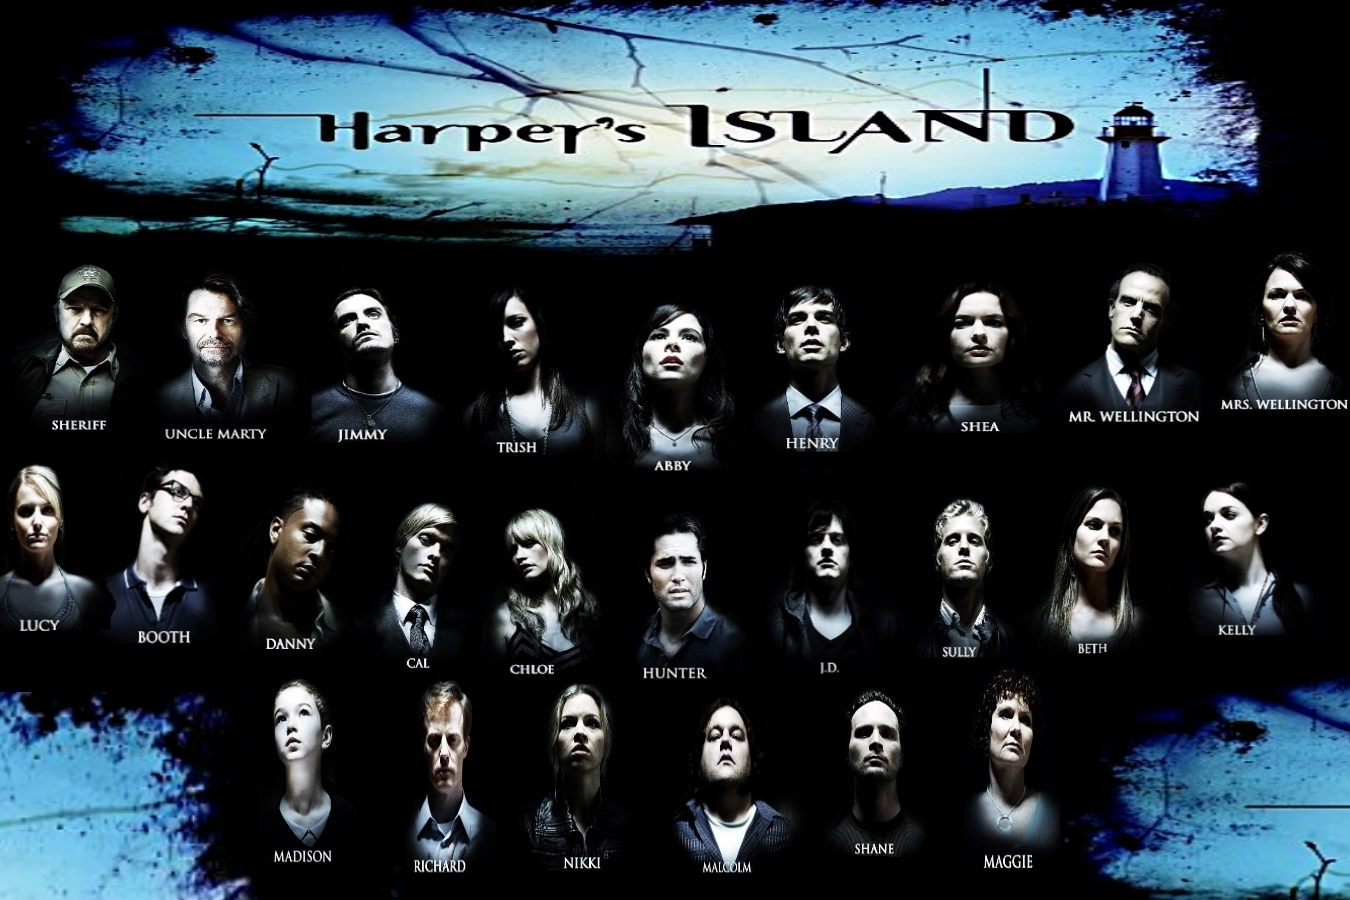 http://jpseries.files.wordpress.com/2009/09/harpers-island-harpers-island-5931346-1350-9001.jpg